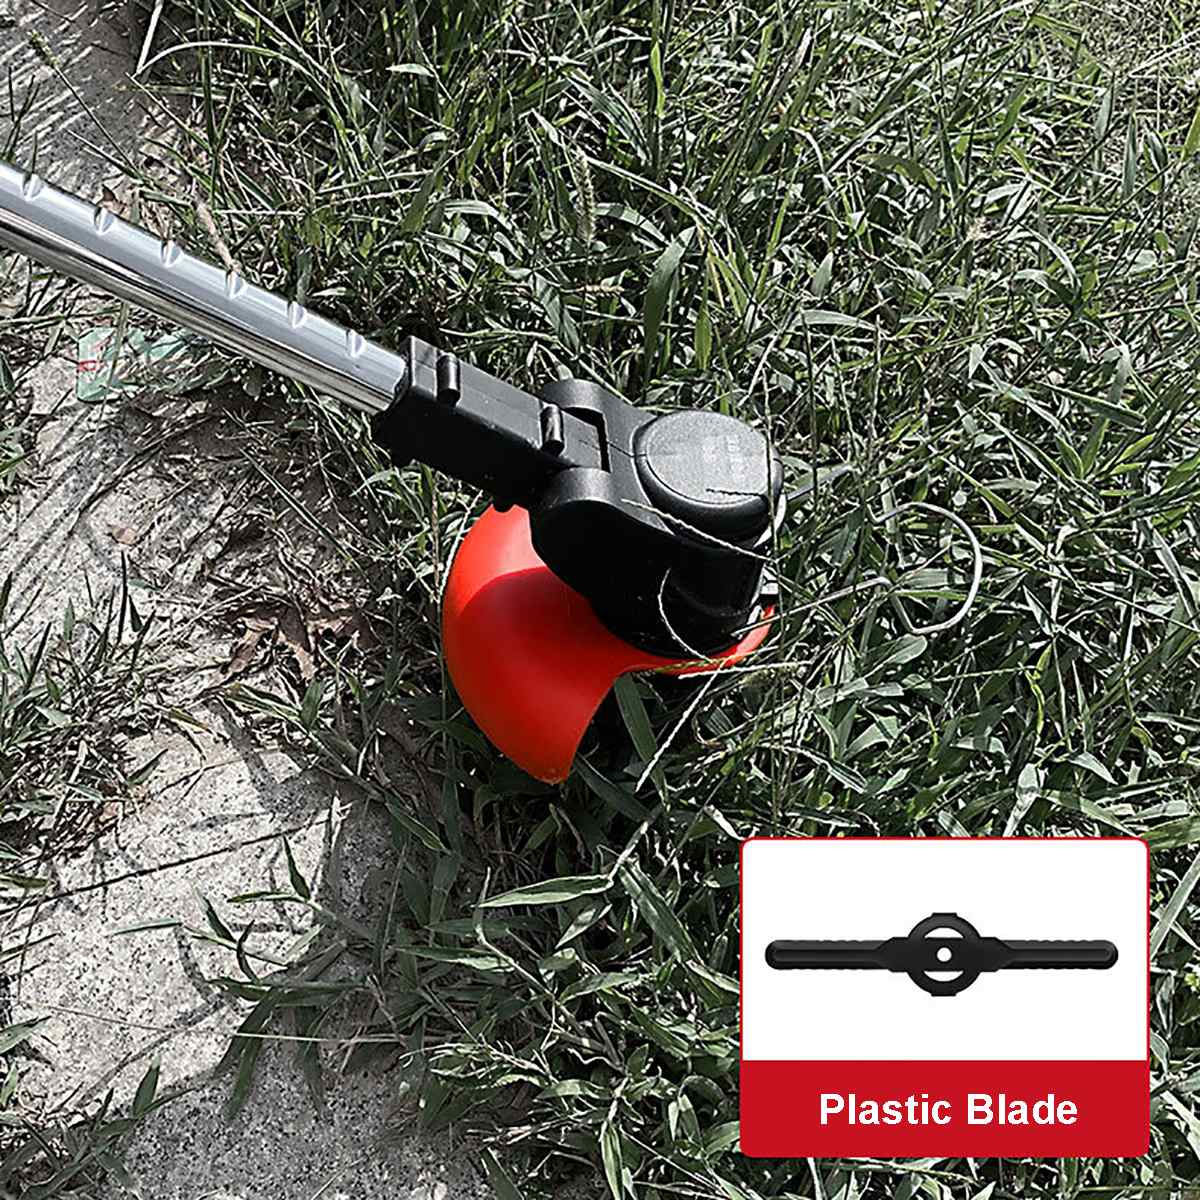 7500mah Cordless Auto Tools Cutter Lawn 118VF Battery Trimmer Garden With Pruning String Electric Mower Grass Release